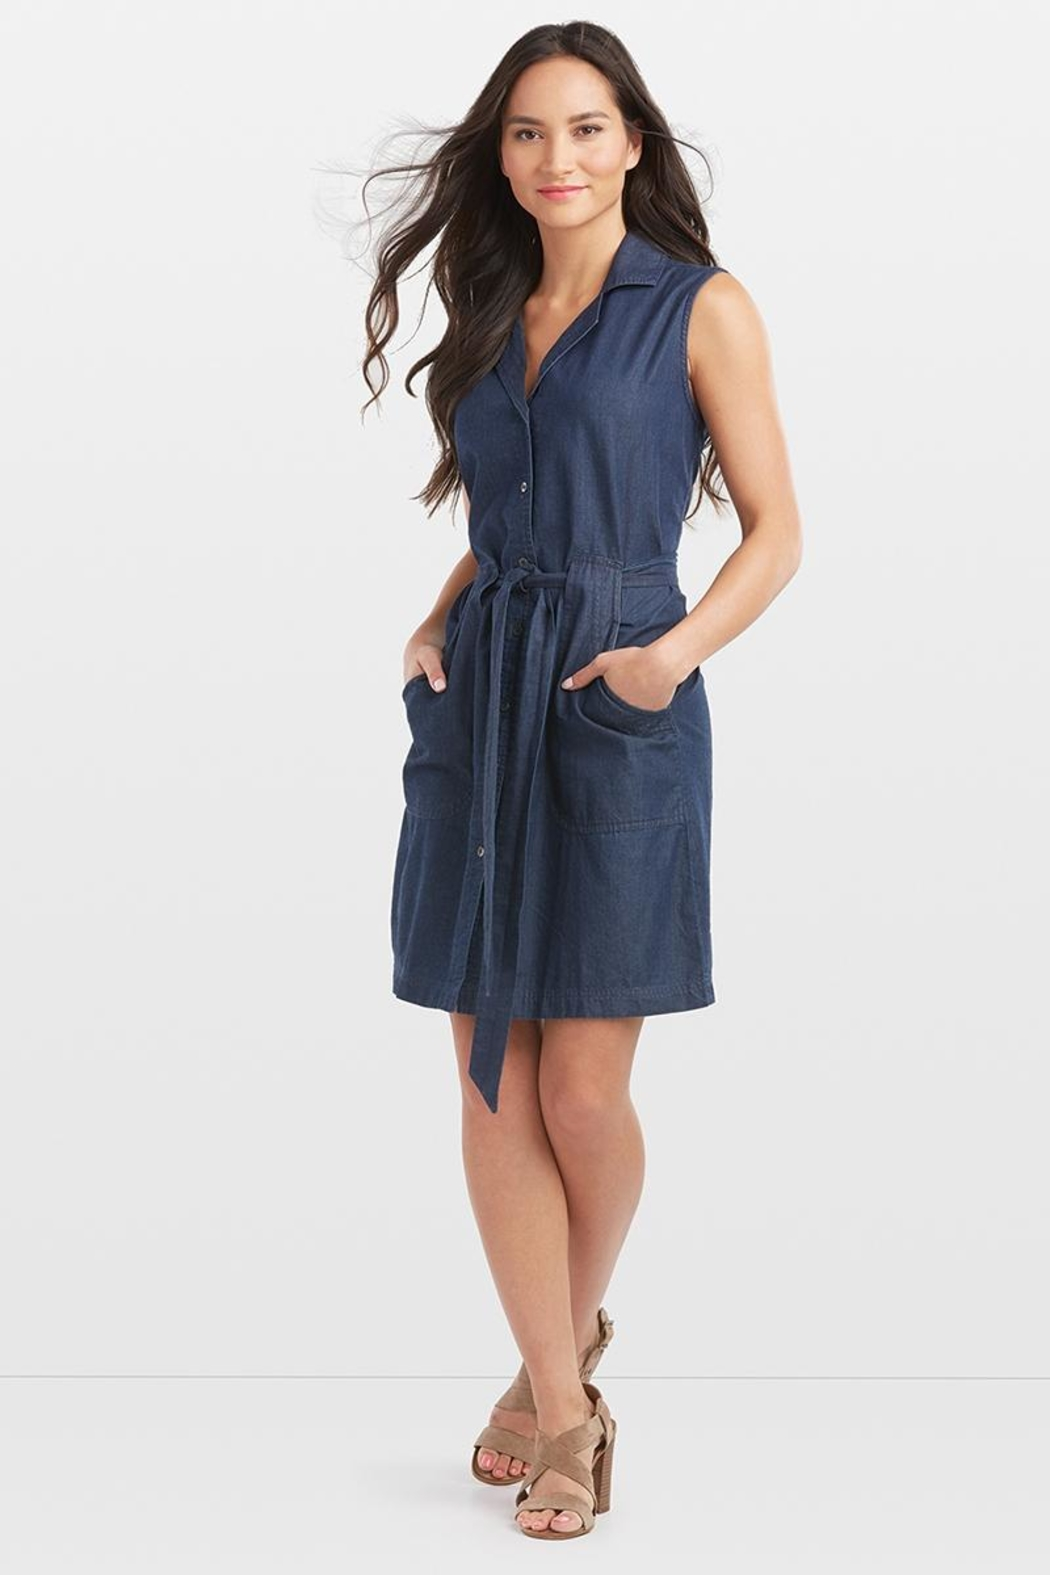 Coco + Carmen Valencia Denim Dress - Main Image